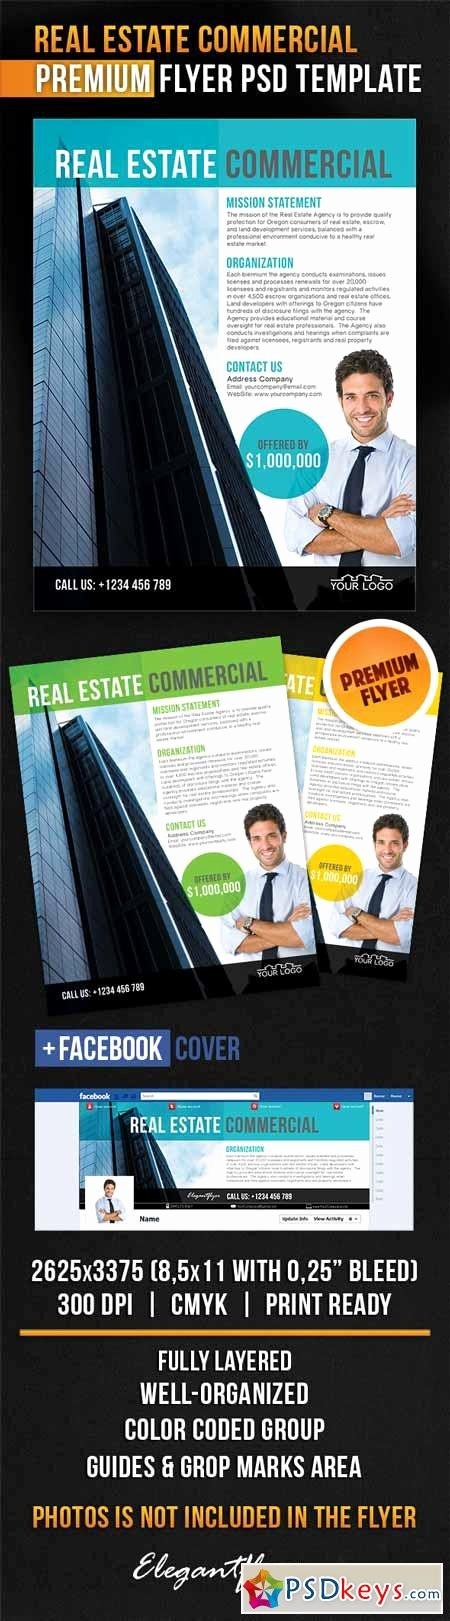 Real Estate Flyer Template Psd Inspirational Real Estate Mercial – Flyer Psd Template